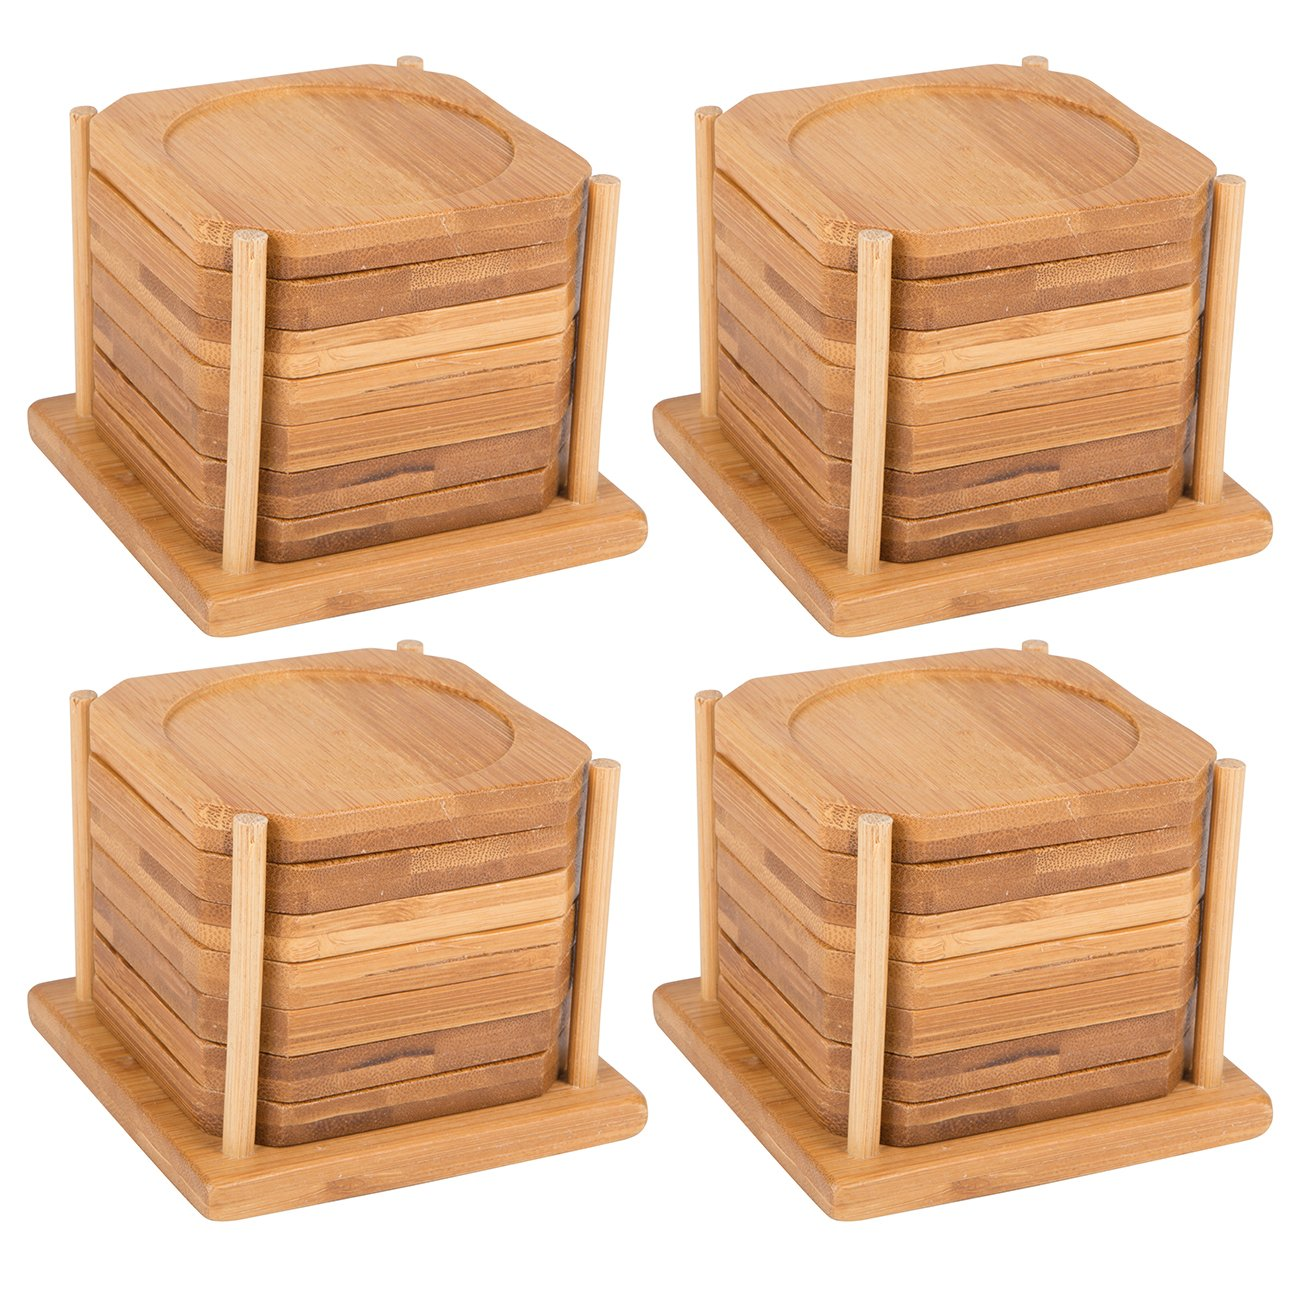 3.5'' Square 100% Natural Bamboo Coaster – Set of 6 with Holder Trademark Innovations (4 Sets of 6 Coasters Each)